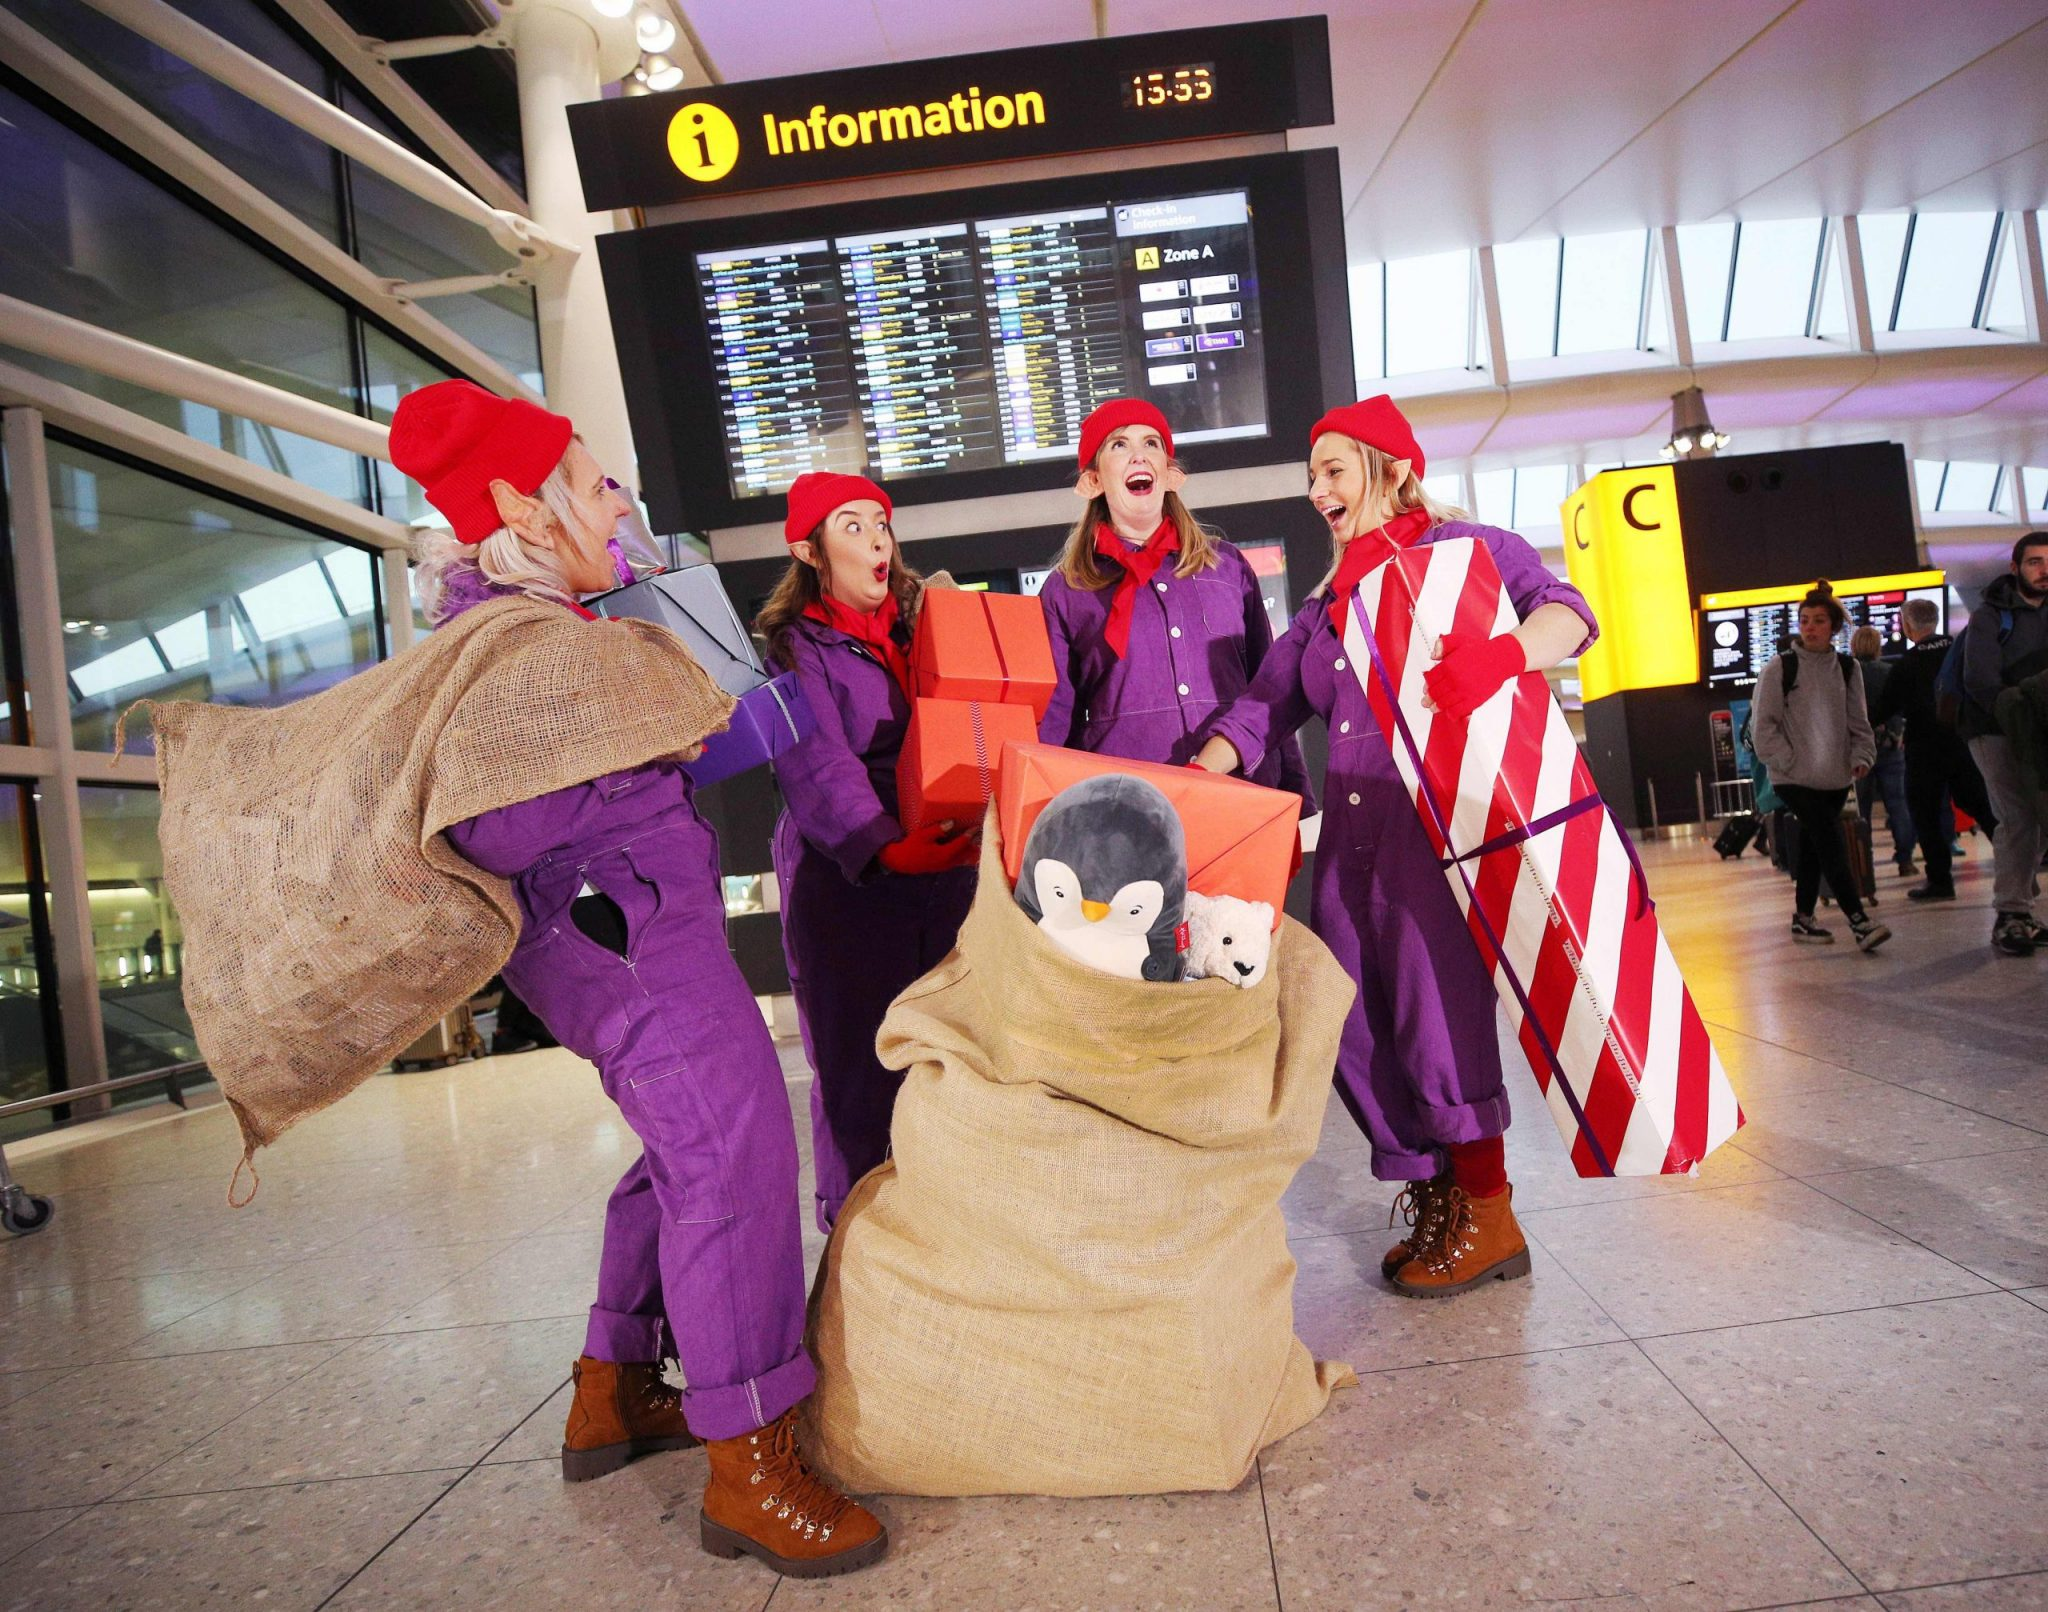 *** FREE FOR EDITORIAL USE *** Heathrow today unveils a long held secret: Santa's workshop is underneath Terminals 2 and 5.   Given the magical feat achieved by Santa and his team of elves each year – it's no wonder that, like many others around the world, he relies on the UK's hub airport to get to where he needs to be during the holidays. And what's more, Santa has built his entire workshop right underneath Heathrow's terminals.  Heathrow today unveils a magical installation of periscopes at Terminals 2 and 5 that will allow children (and adults) - throughout December - to immerse themselves, and witness the inner workings of Santa's incredible logistical feat for the very first time. Scenes from Santa's Toy Factory, Department of Wrapping and Mail Room all feature Heathrow's 'Elf Squad', acted out by the airport's very own colleagues, helping bring the magic alive for children and adults alike.